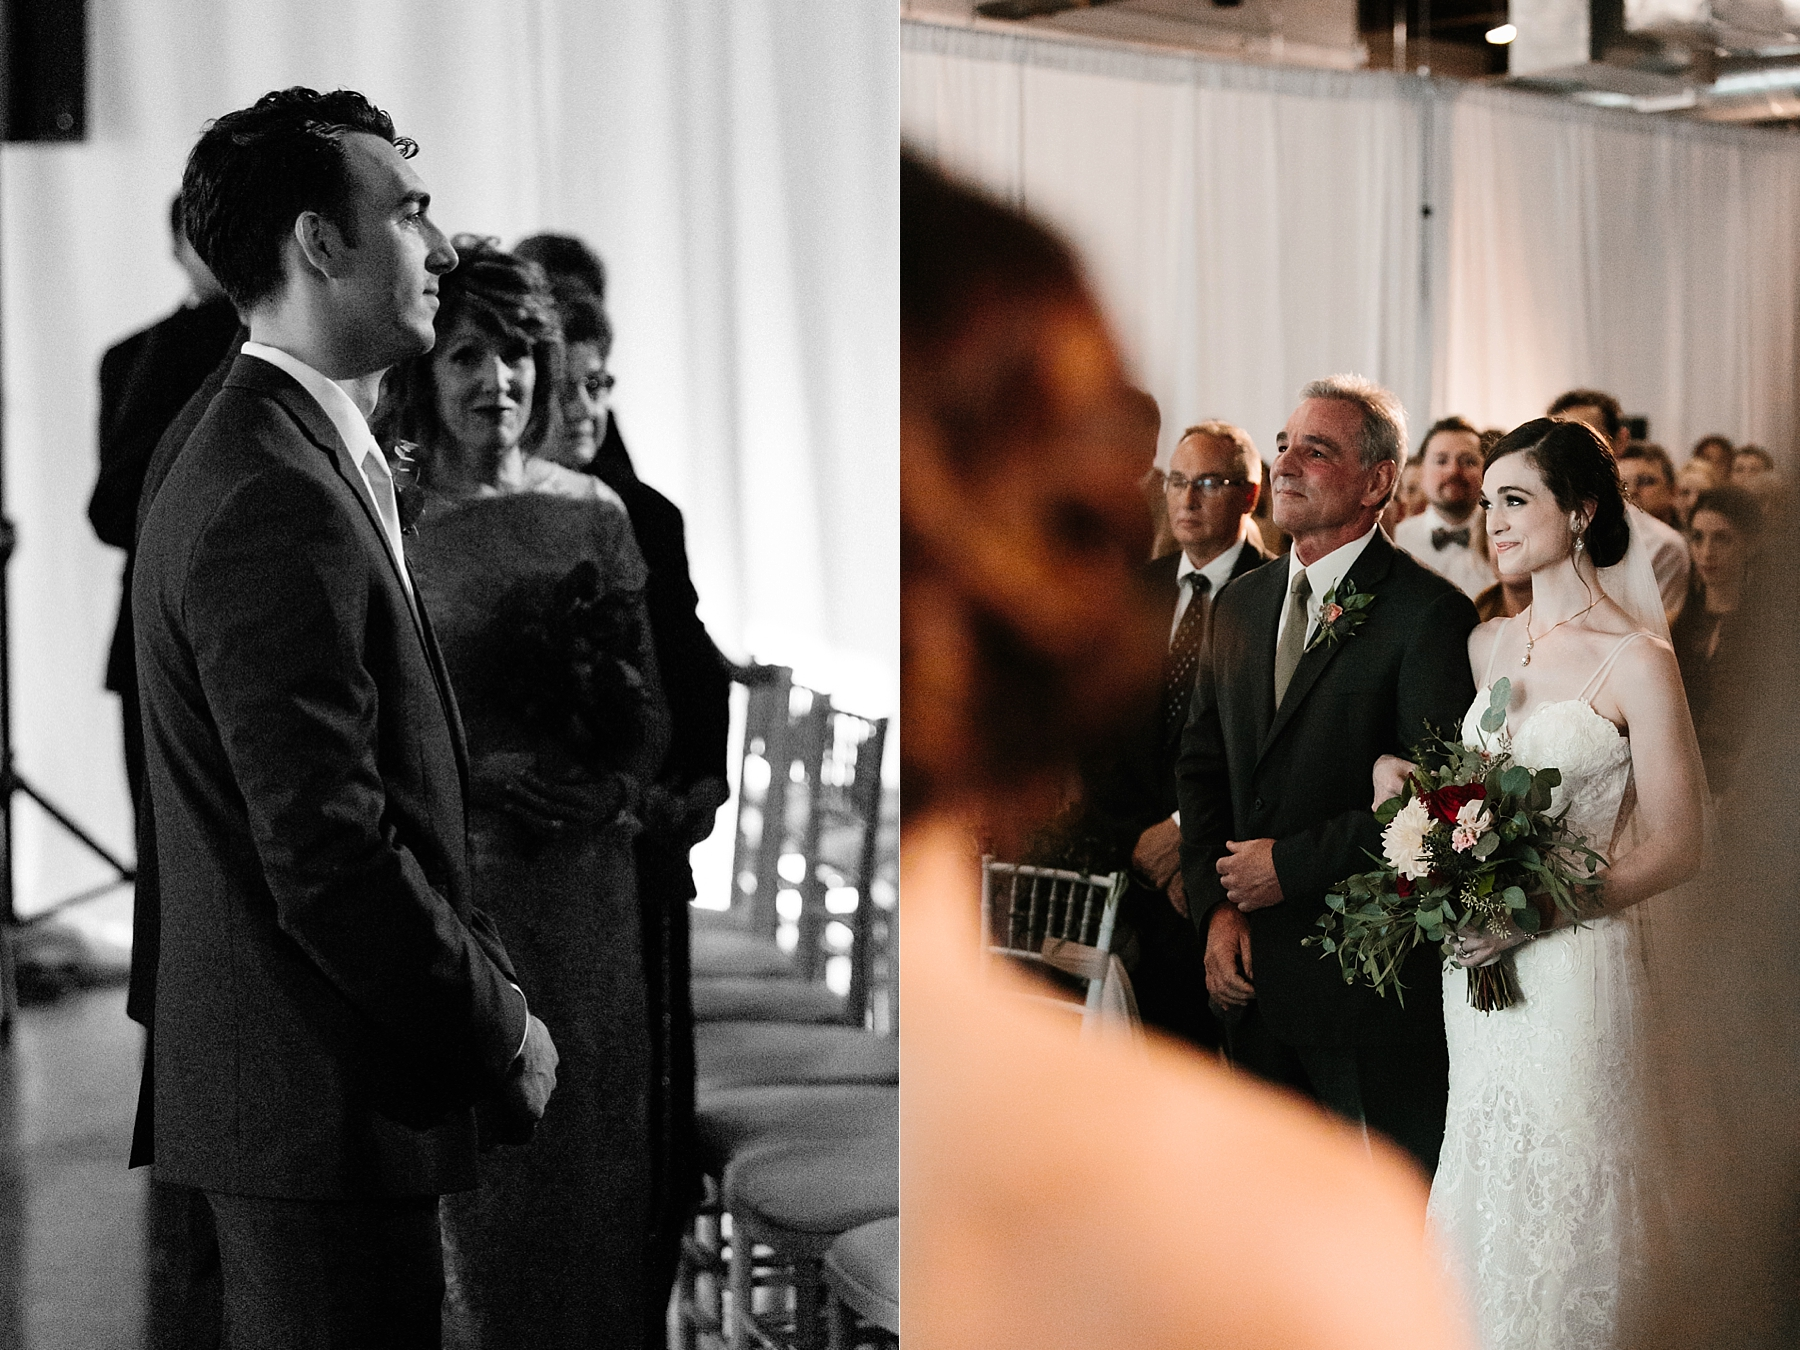 Emily + Caleb _ an elegant, intentional, industrial style wedding with navy + gold accents at 6500 in Dallas, TX by North Texas Wedding Photographer Rachel Meagan Photography _ 077